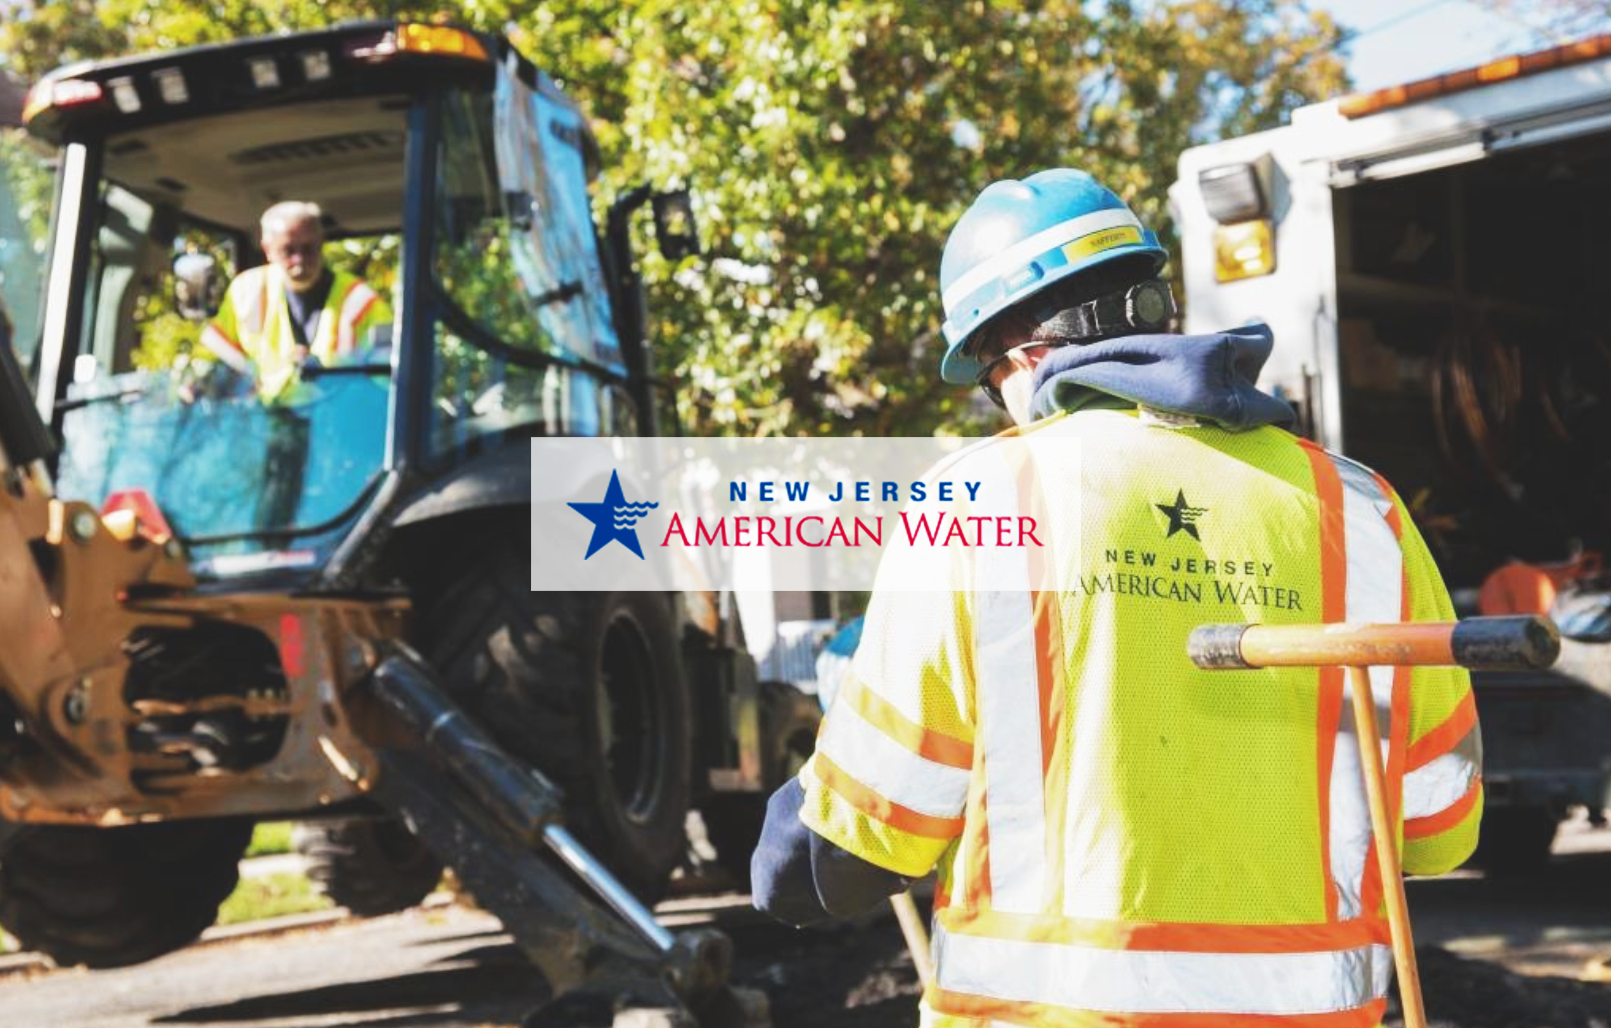 New Jersey American Water Employees working on job site